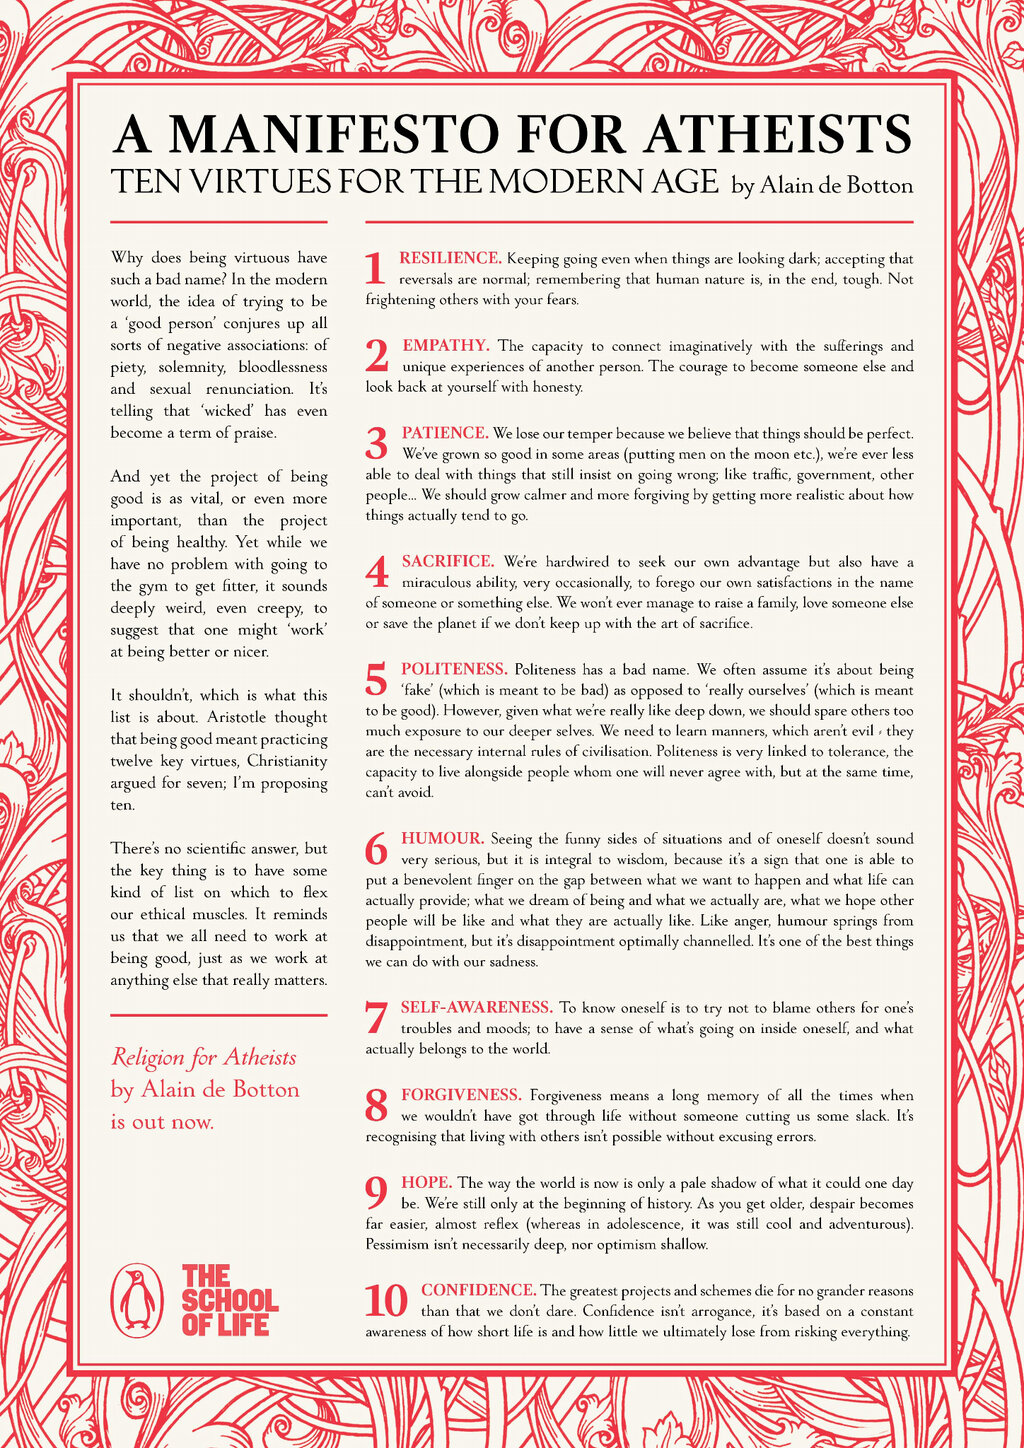 """A Manifesto for Atheists - Ten Virtues for a Modern Age"" by Alain de Botton"